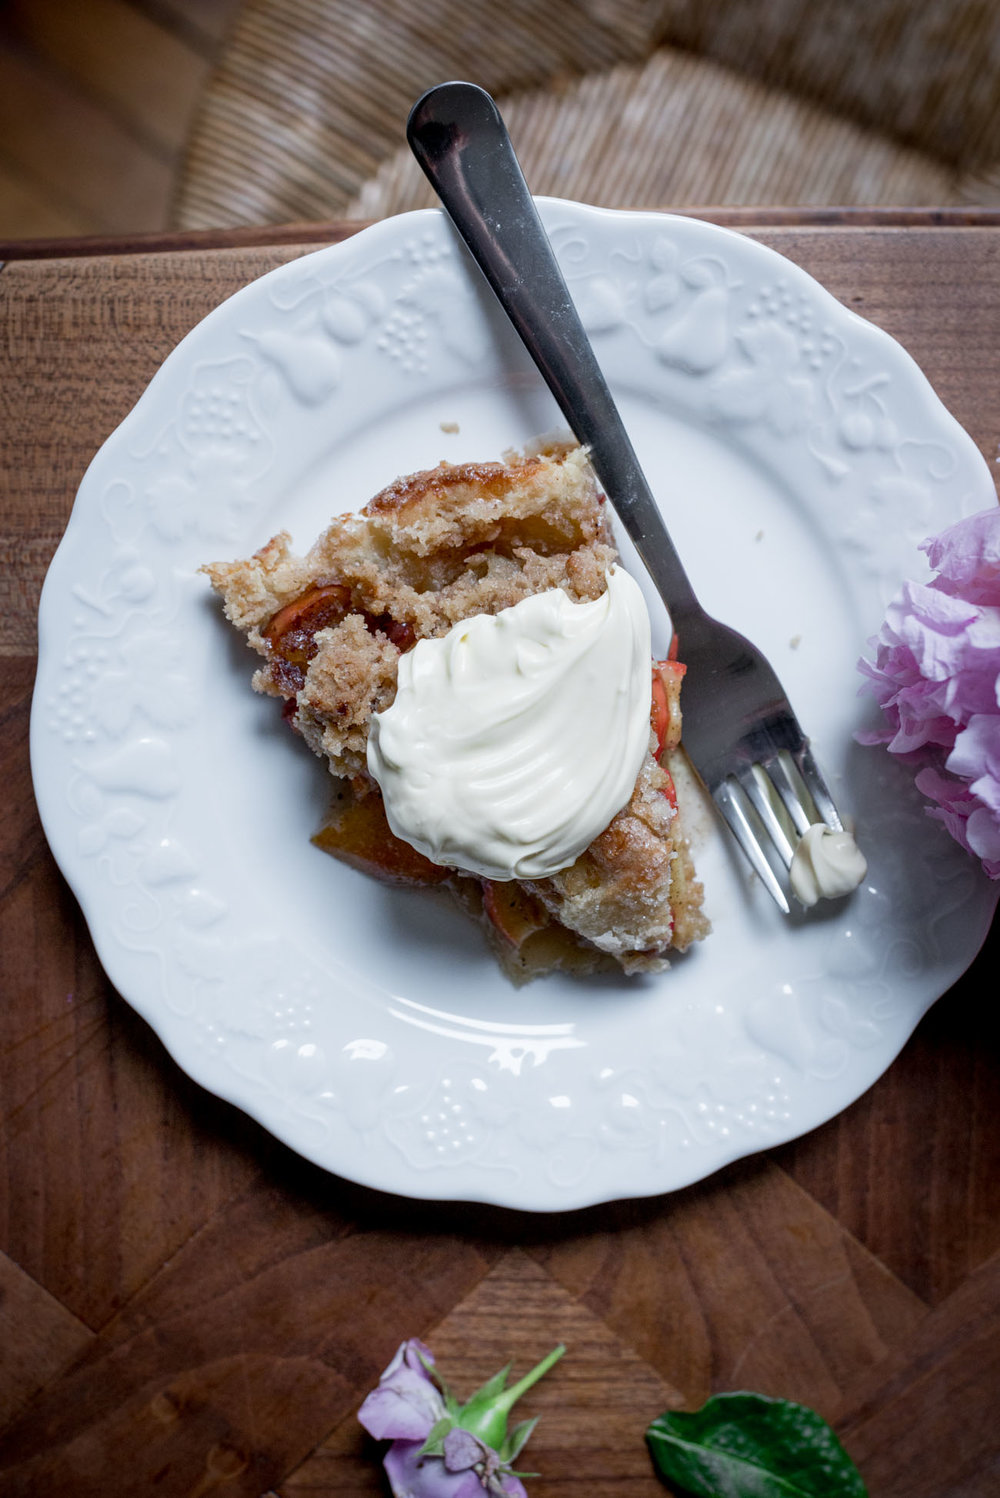 Hazelnut-Streusel-Apple-Pie-with-Brown-Butter-9.jpg